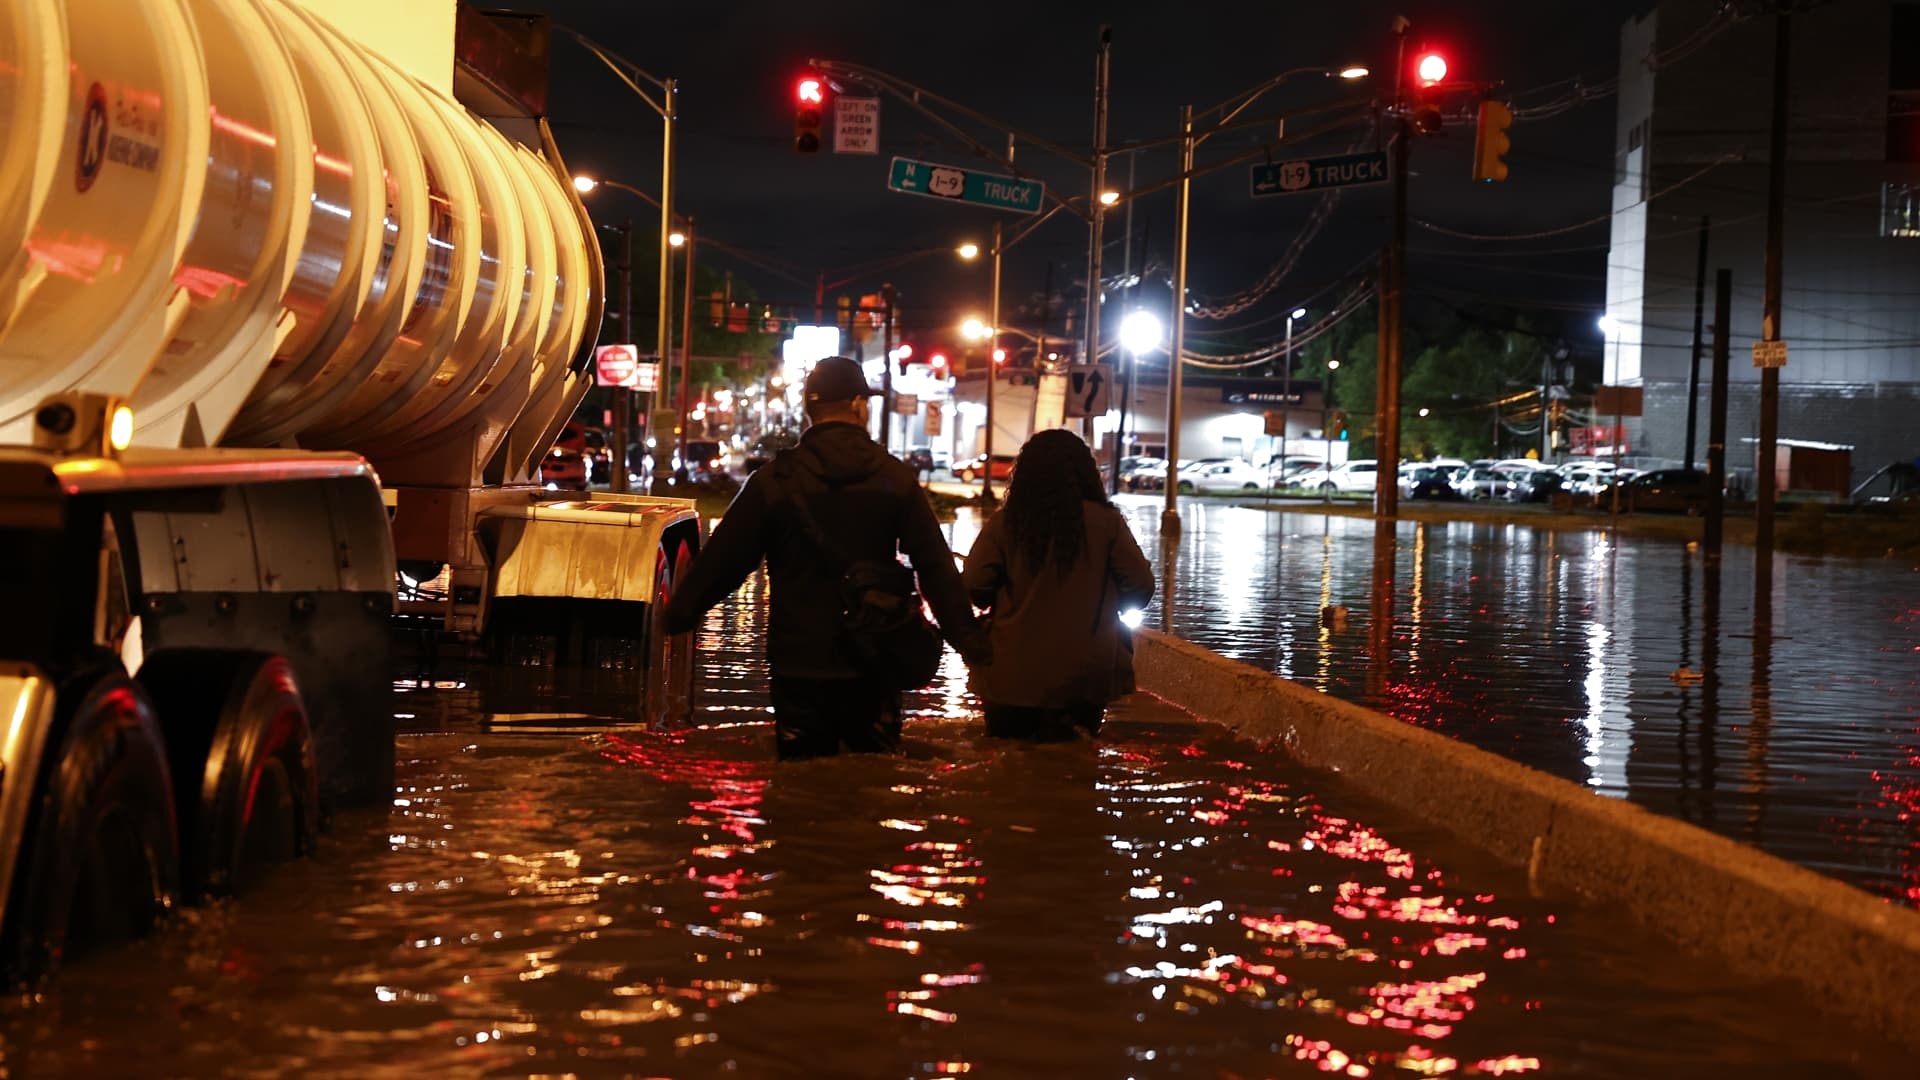 Highway 440 flooded in Jersey City of New Jersey, United States on September 2, 2021 as hundreds of cars stuck in water as Hurricane Ida left behind flash floods east coast.